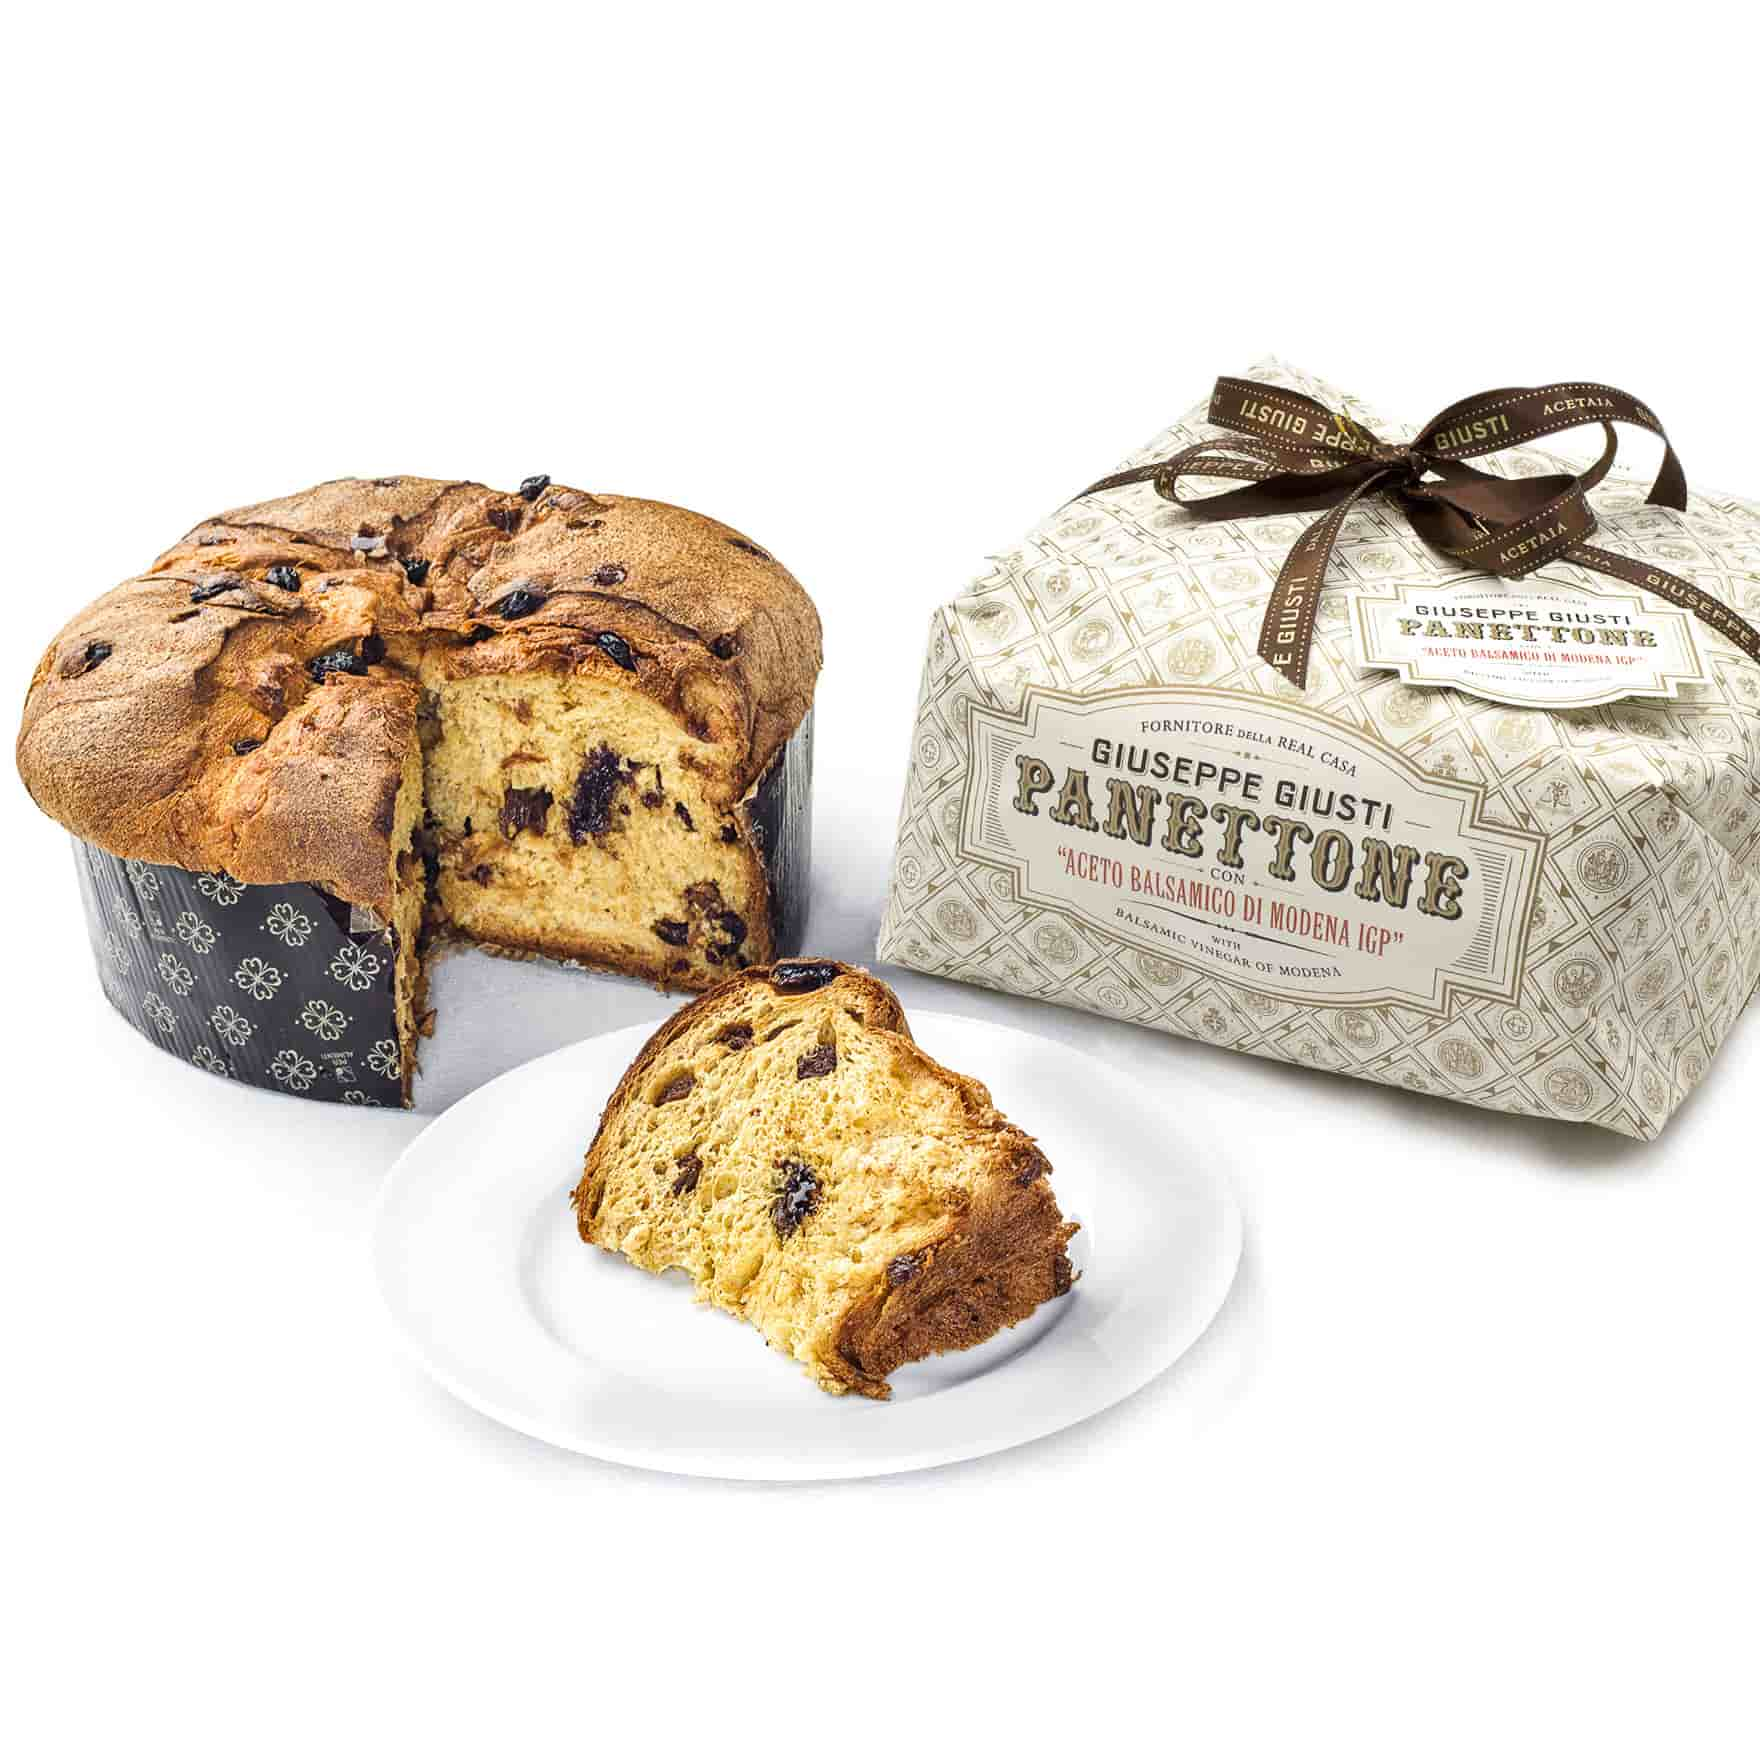 Giuseppe Giusti Panettone with Balsamic Vinegar 1kg